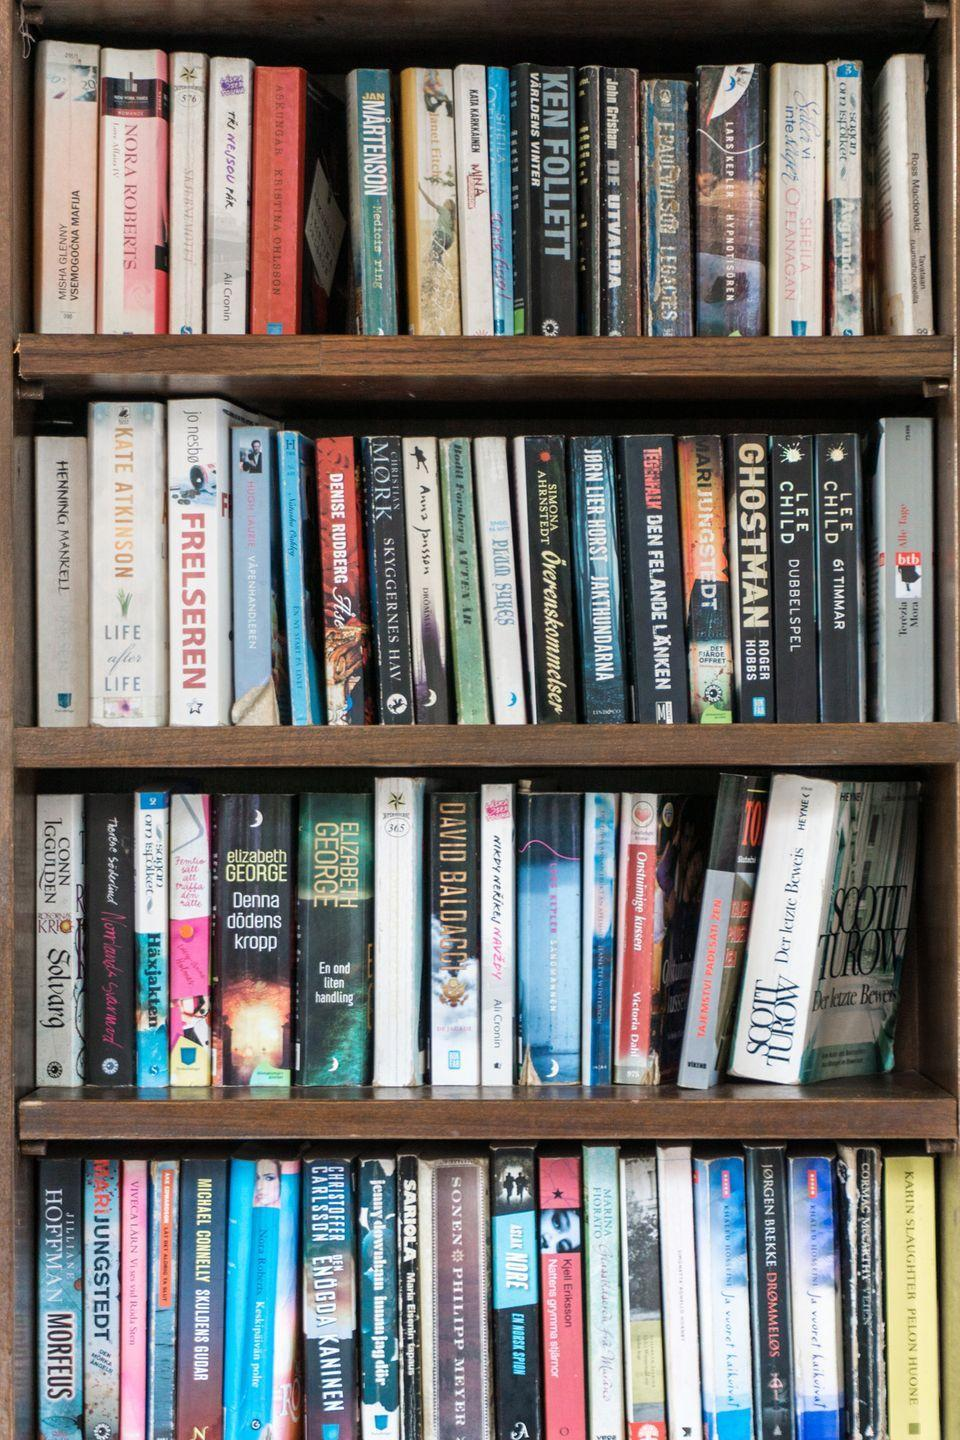 "<p>Pass on your former <a href=""https://www.goodhousekeeping.com/life/entertainment/g22749180/best-books-for-teens/"" rel=""nofollow noopener"" target=""_blank"" data-ylk=""slk:favorite beach reads"" class=""link rapid-noclick-resp"">favorite beach reads</a> to friends by holding a book swap. Or, find a <a href=""https://littlefreelibrary.org/"" rel=""nofollow noopener"" target=""_blank"" data-ylk=""slk:Little Free Library"" class=""link rapid-noclick-resp"">Little Free Library</a> — these are mini-bookshelves that pop up anywhere filled with free books to take. (P.S. Your actual library doesn't need these.)</p>"